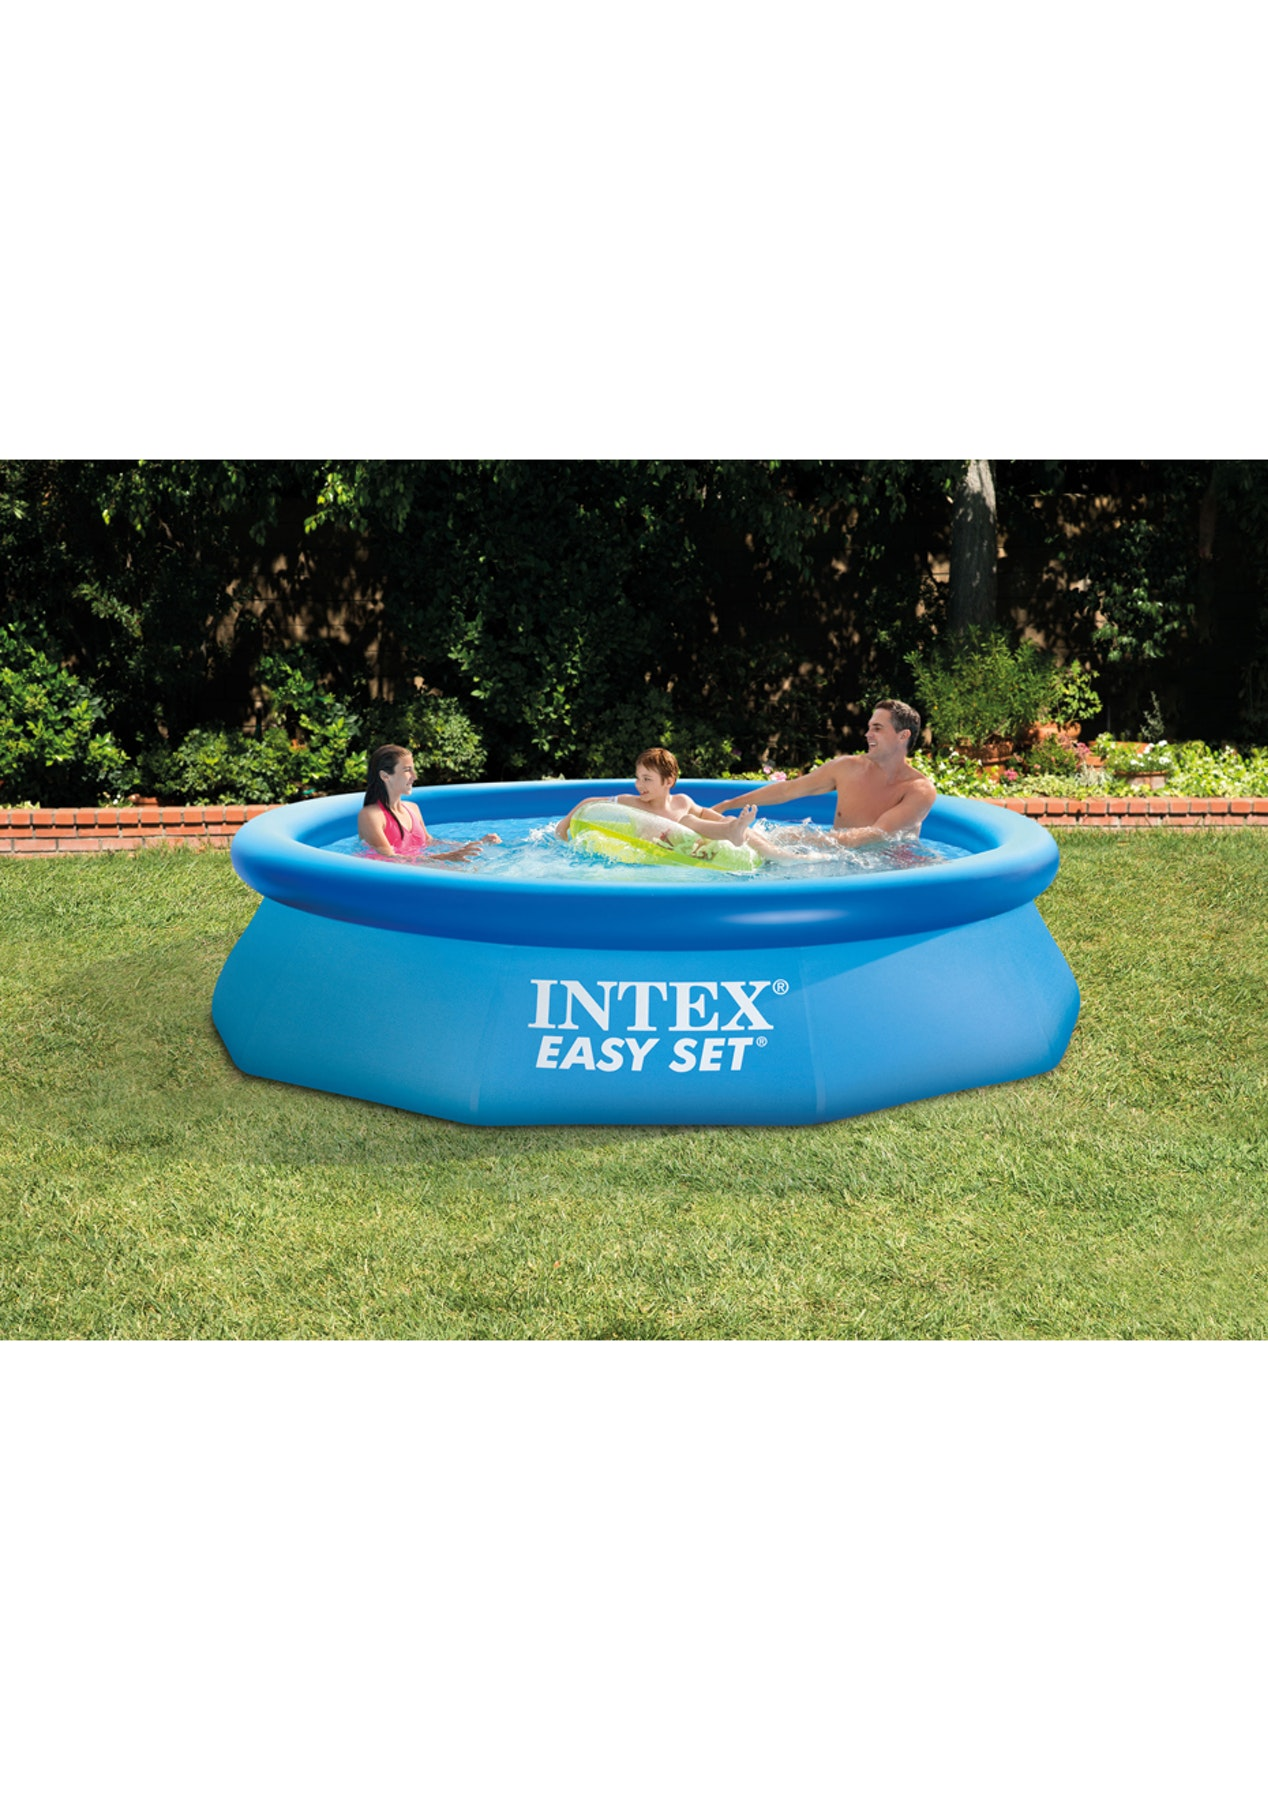 intex 10ft easy set pool intex pools and inflatables. Black Bedroom Furniture Sets. Home Design Ideas